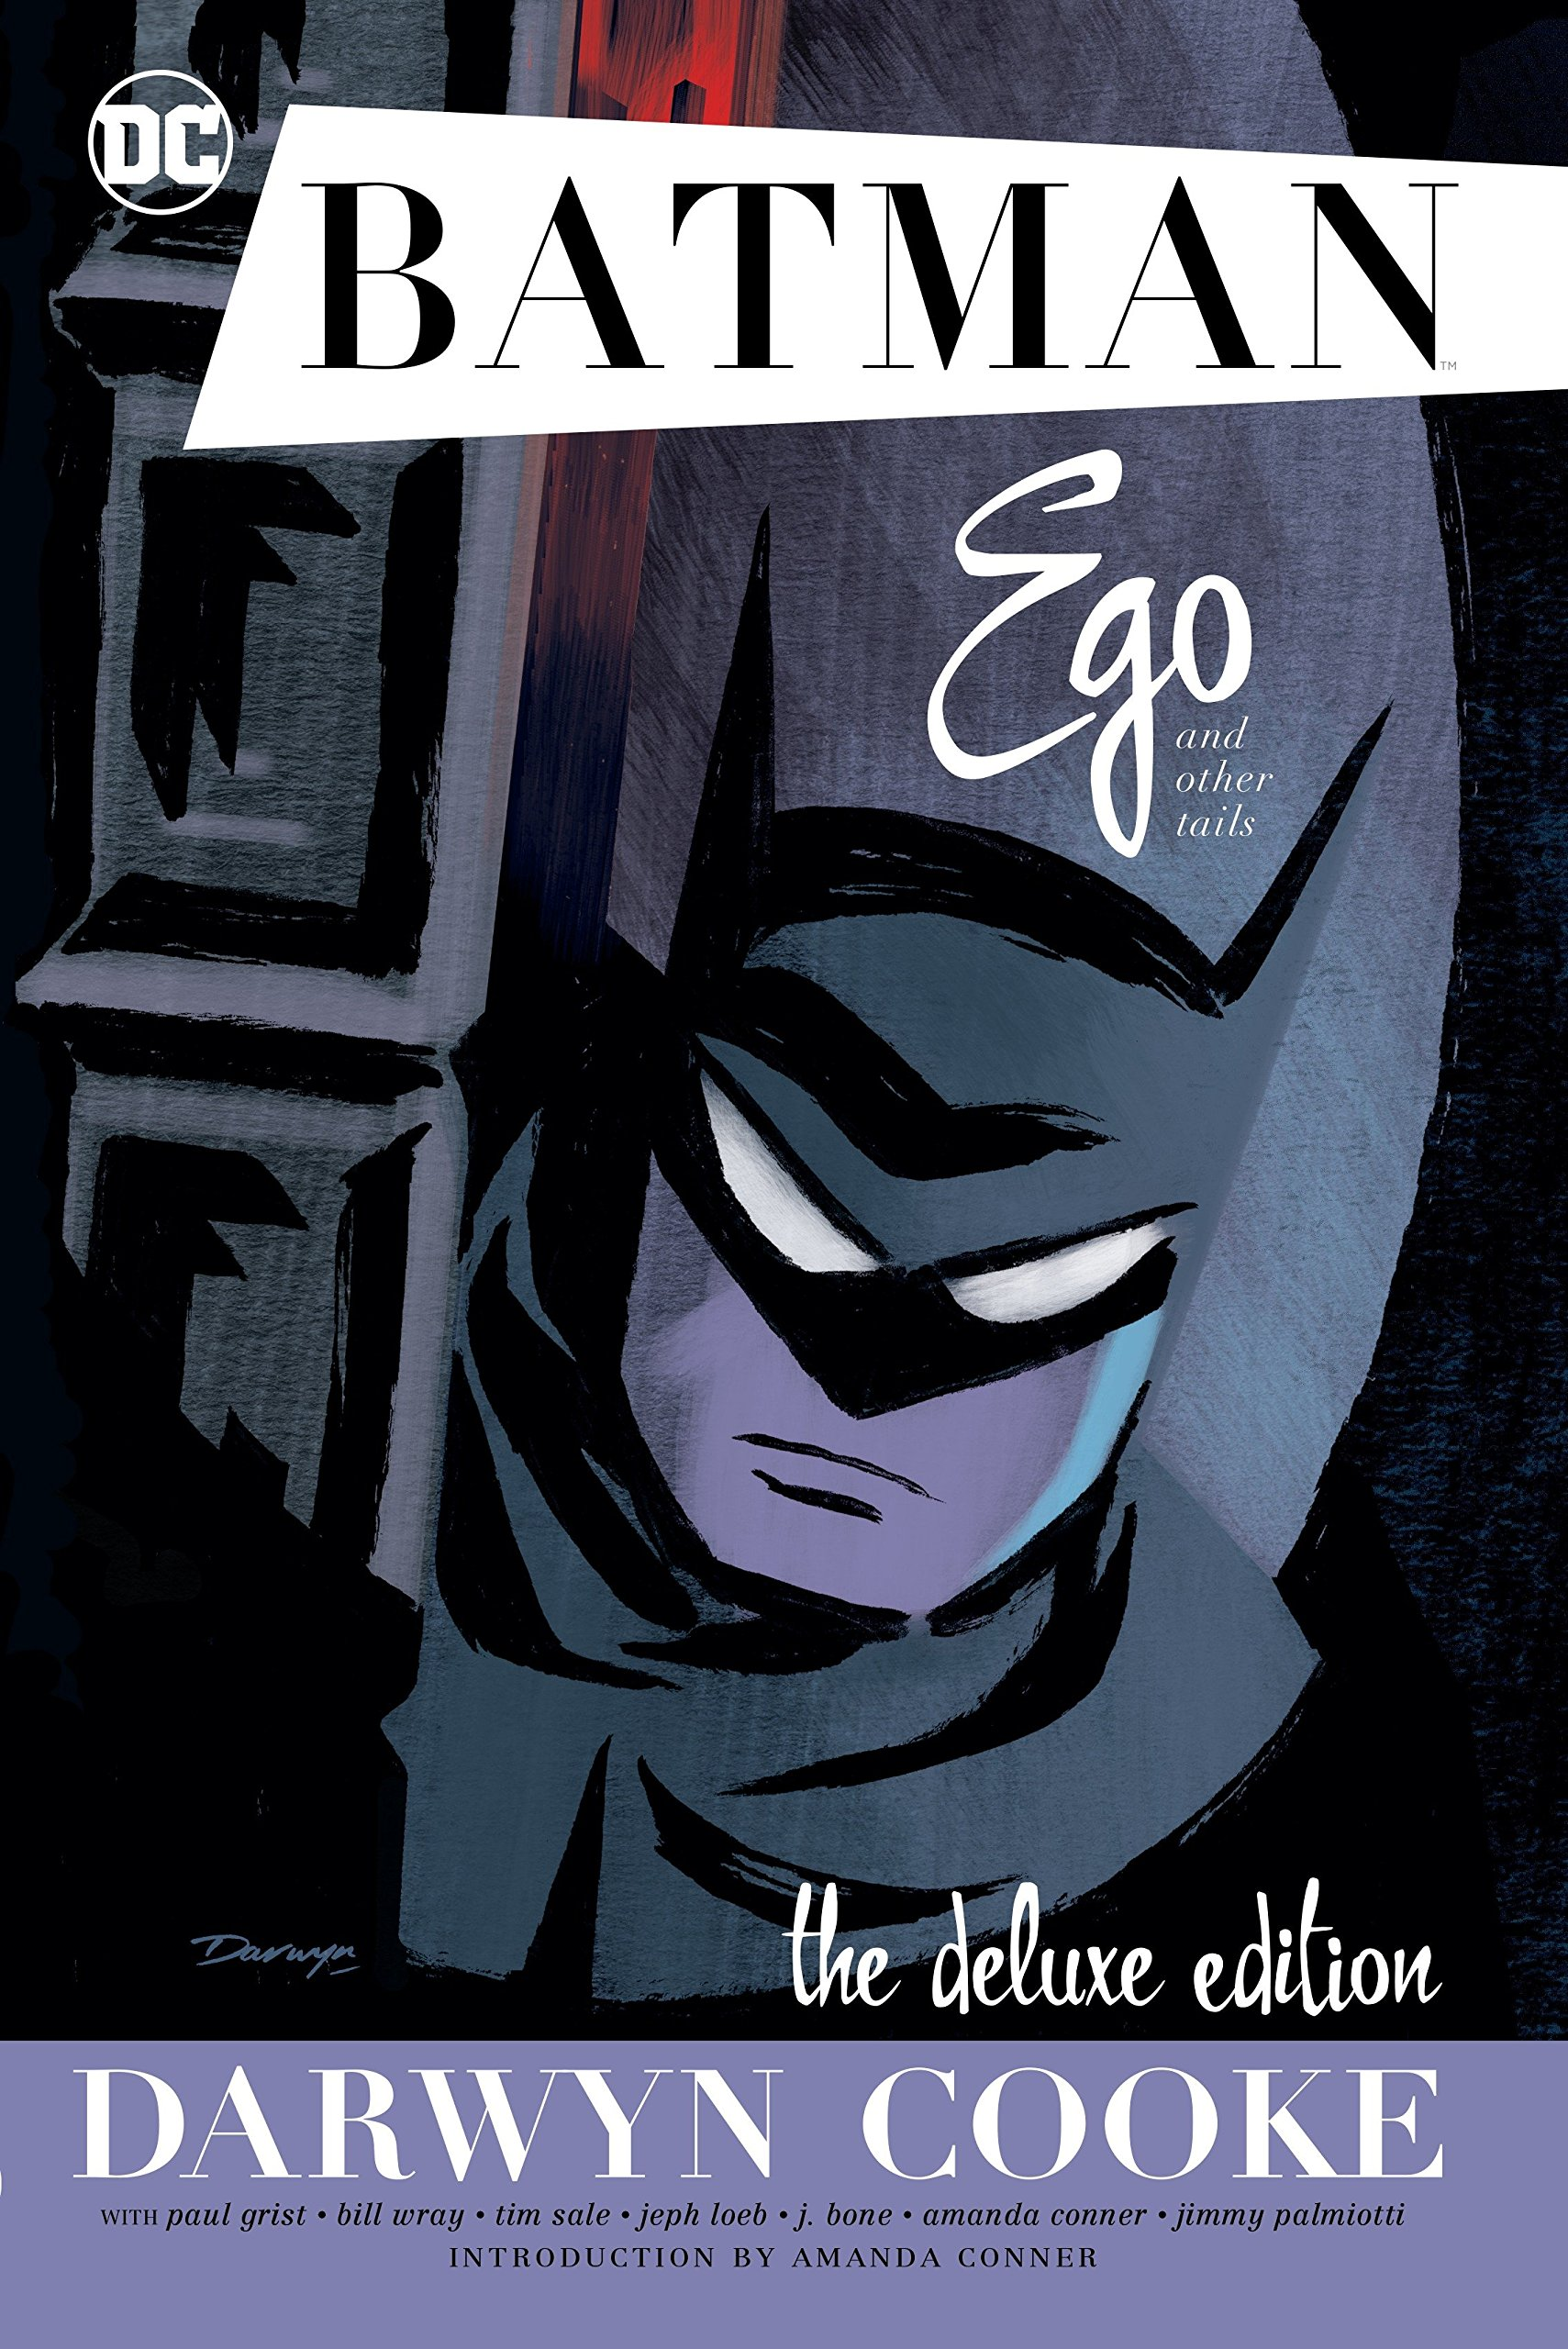 Deux livres pour redécouvrir Darwyn Cooke : « Batman : Ego & Other Tails » (DC Comics, 2017) et « Graphic Ink : The DC Comics Art of Darwyn Cooke » (DC Comics, 2015).